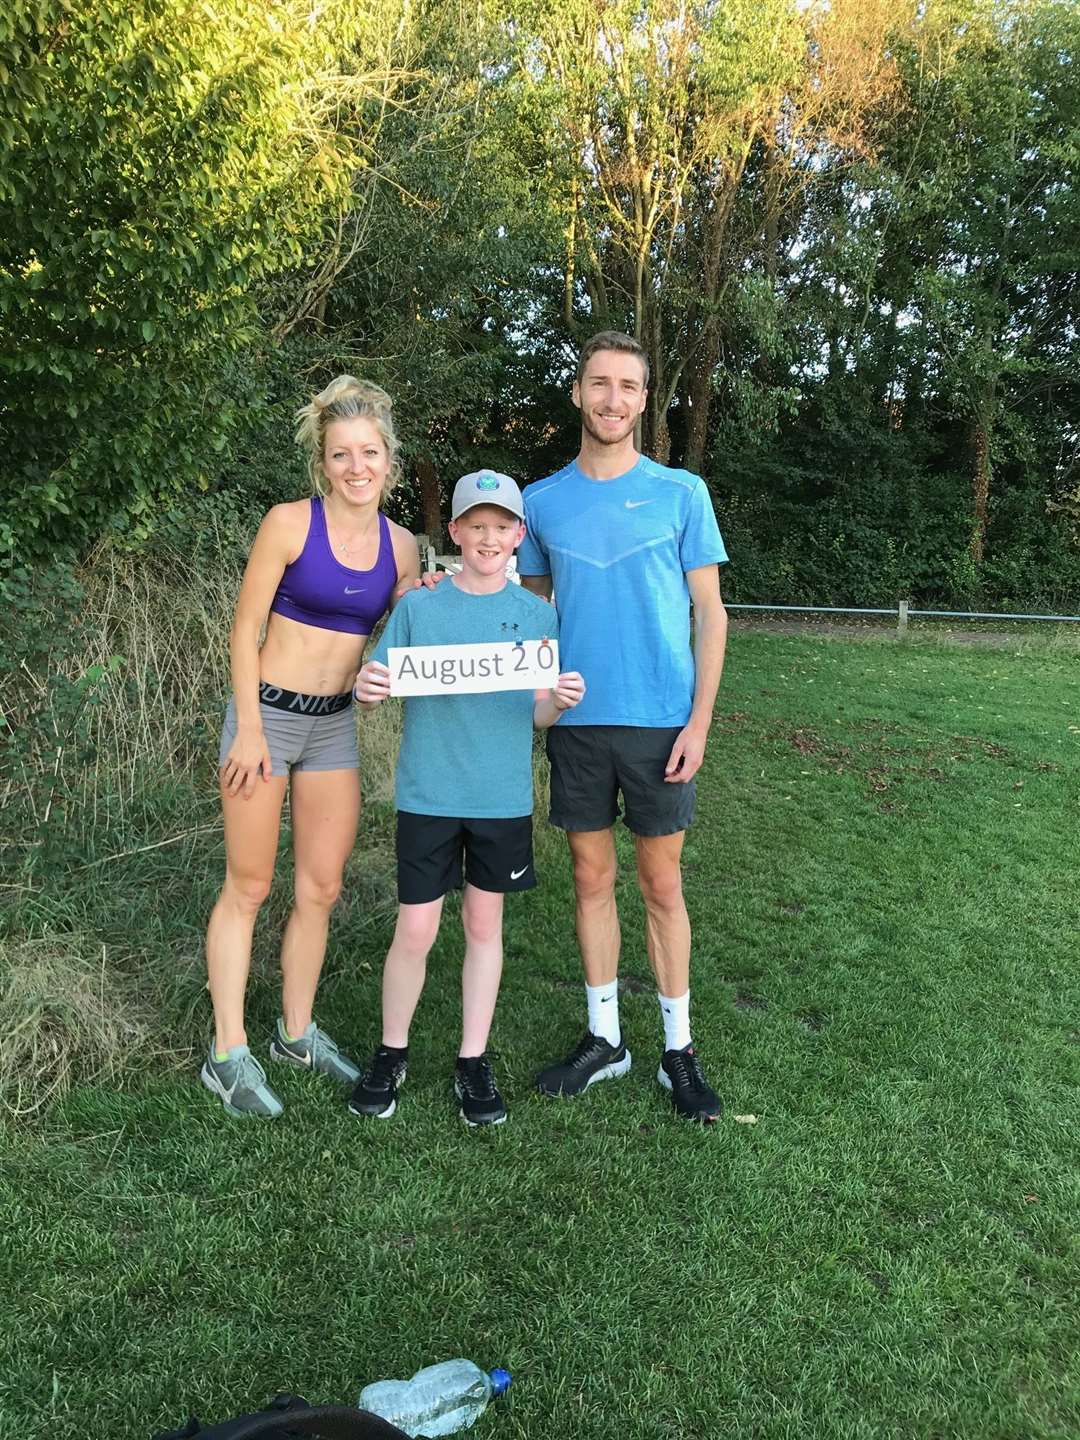 Holly Archer and Marc Scott joined 12-year-old Seb Melero over the summer to support his running charity challenge in Bury St EdmundsPicture: Contributed